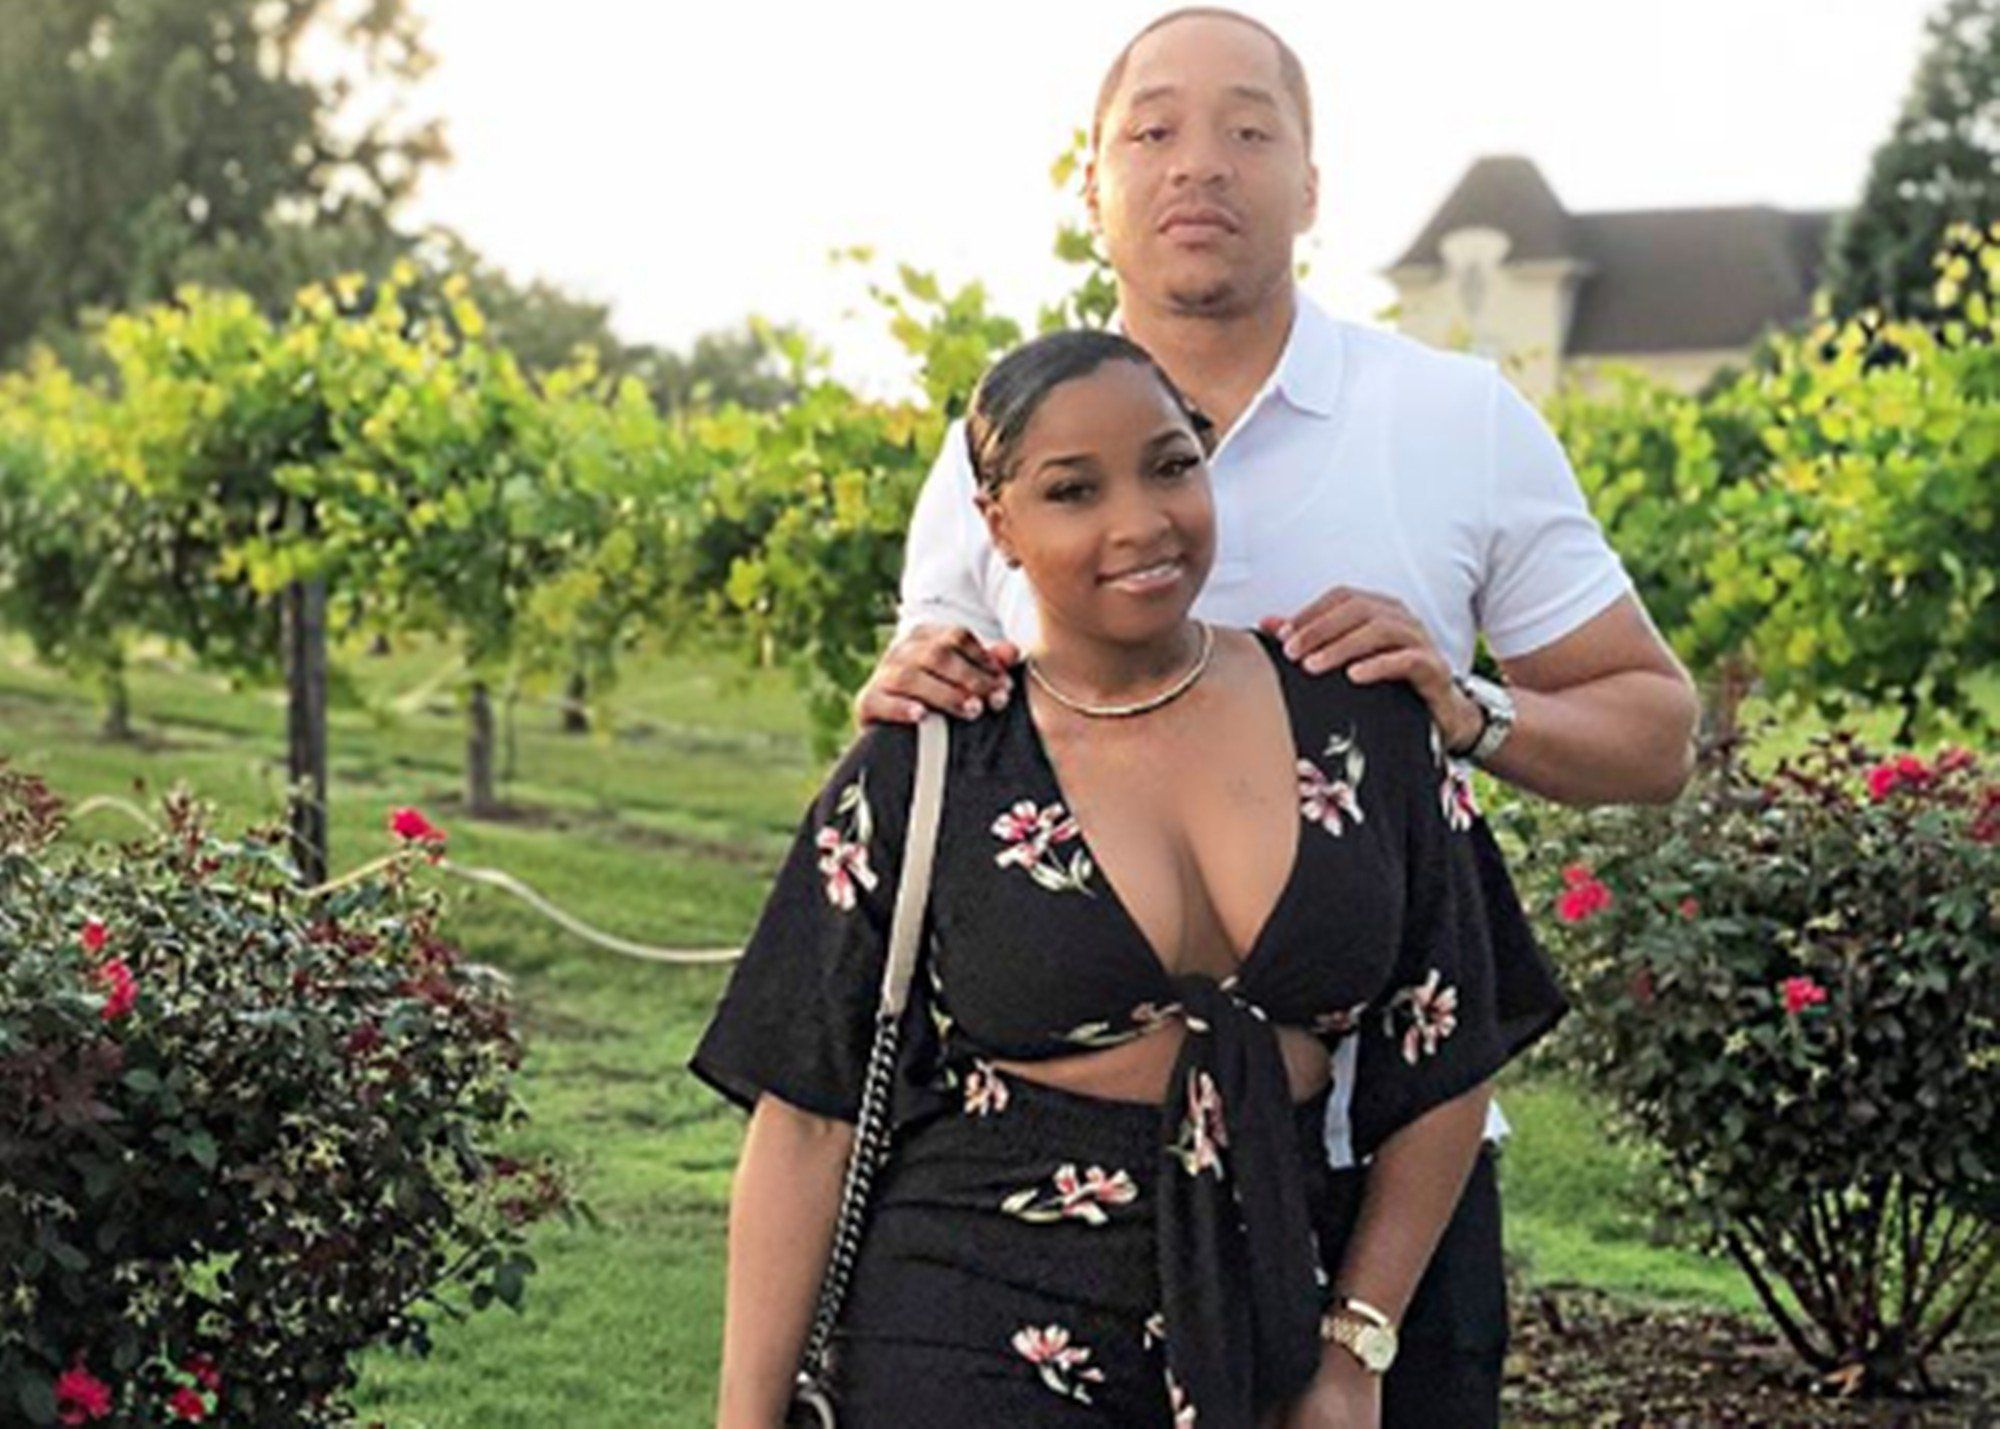 toya-johnsons-fans-tell-her-not-to-get-any-slimmer-following-her-latest-pics-and-videos